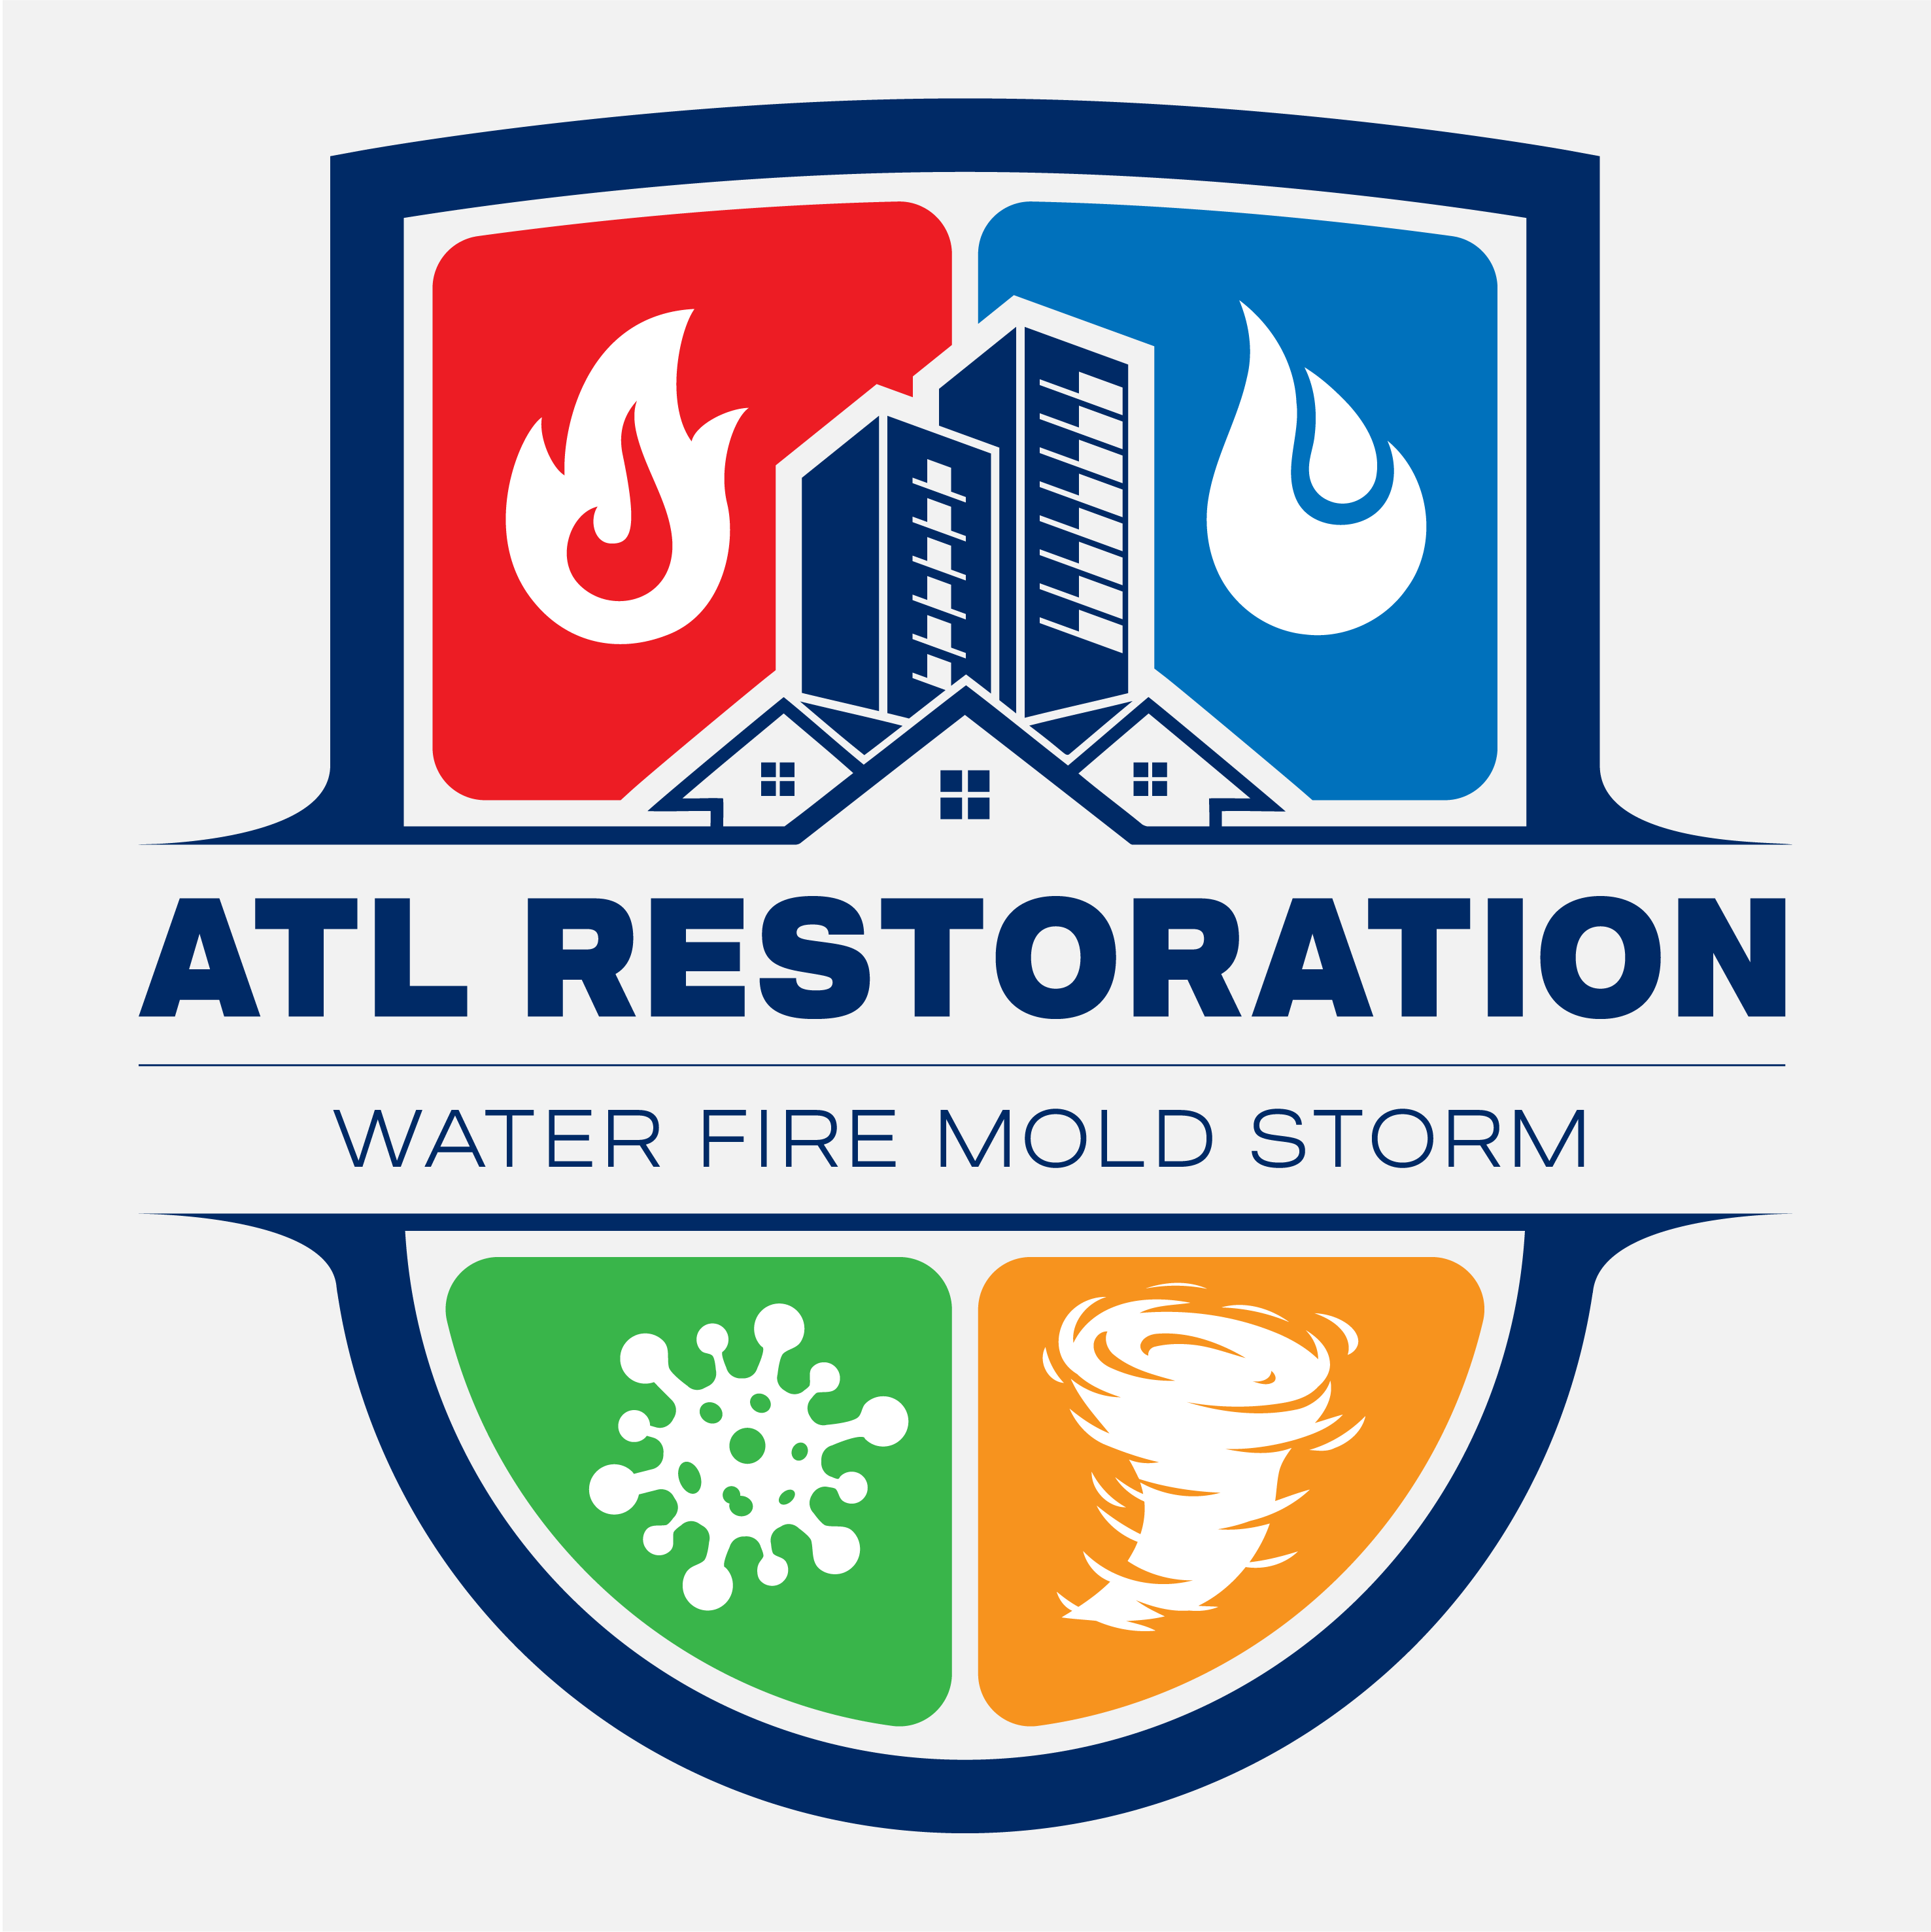 We need a powerful design for emergency restoration company